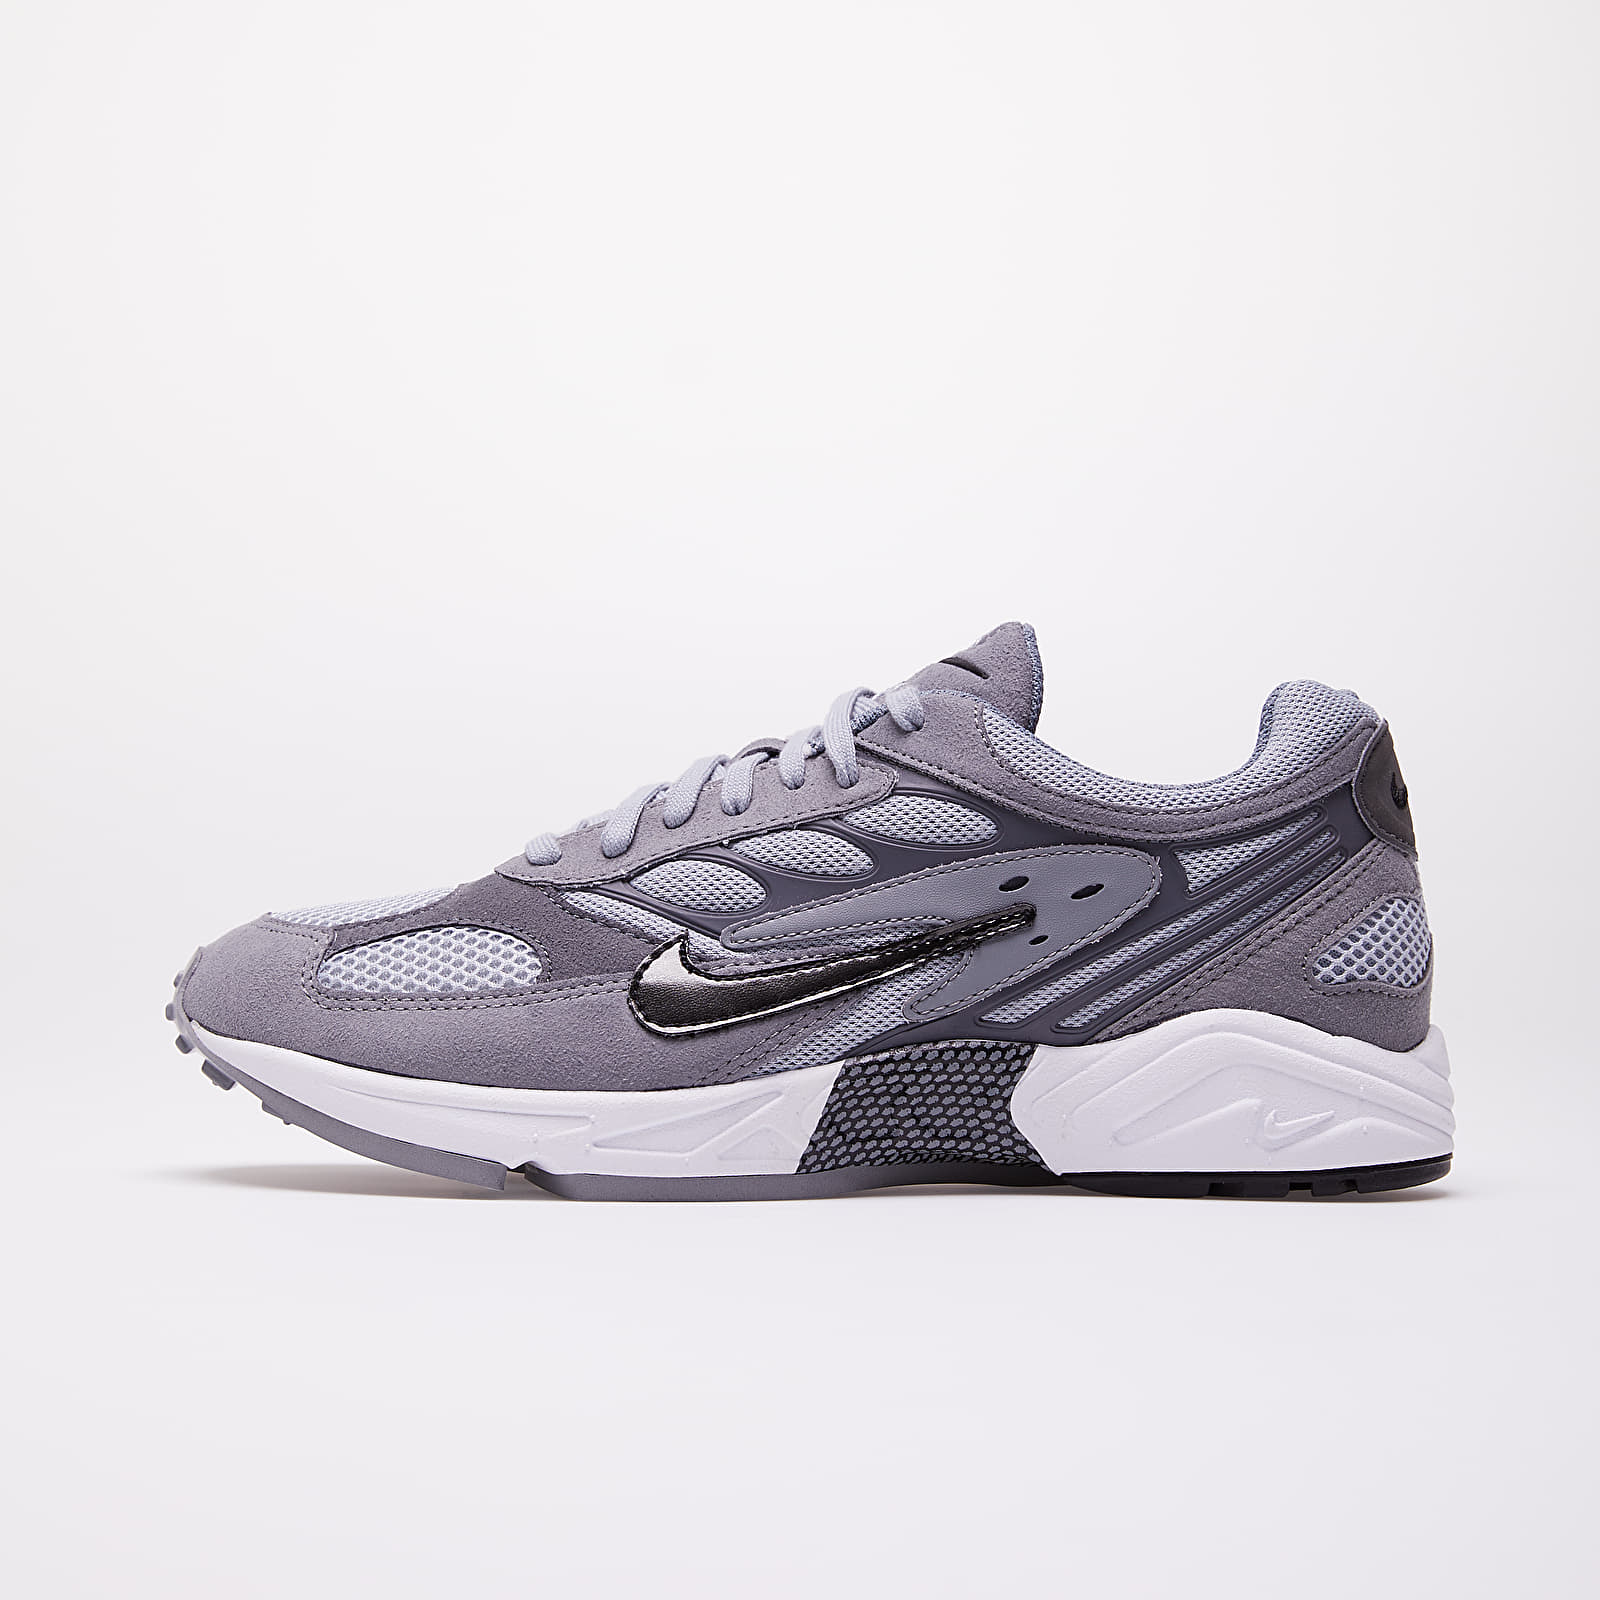 Férfi cipők Nike Air Ghost Racer Cool Grey/ Black-Wolf Grey-Dark Grey